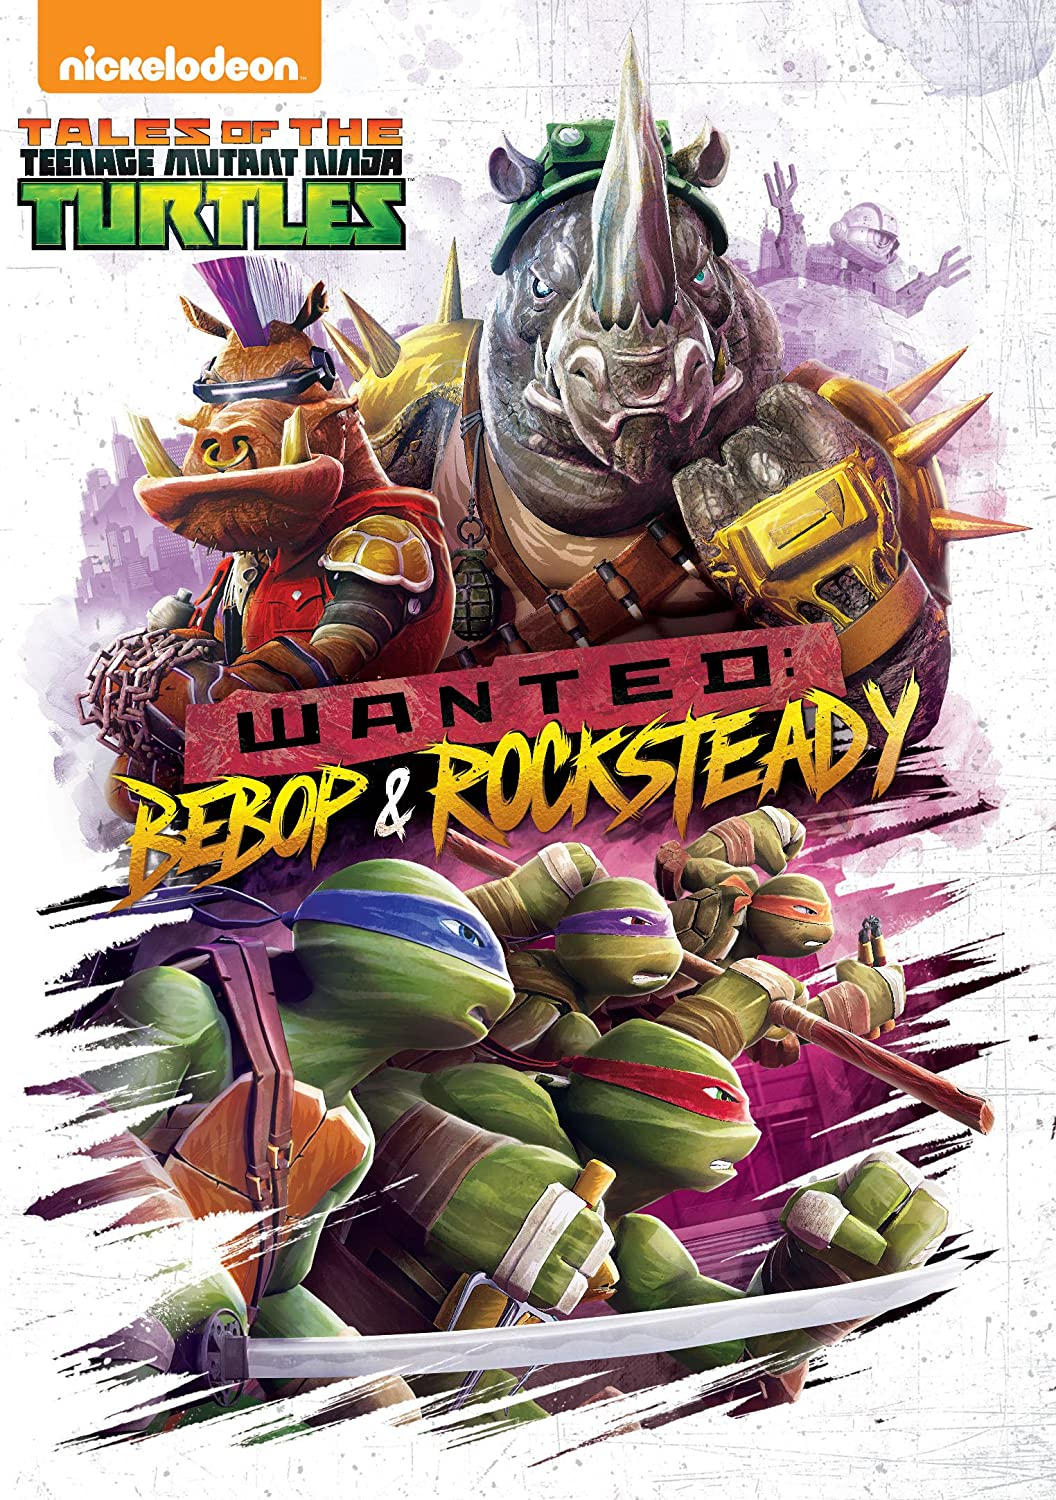 Tales of the Teenage Mutant Ninja Turtles: Wanted: Bebop & Rocksteady